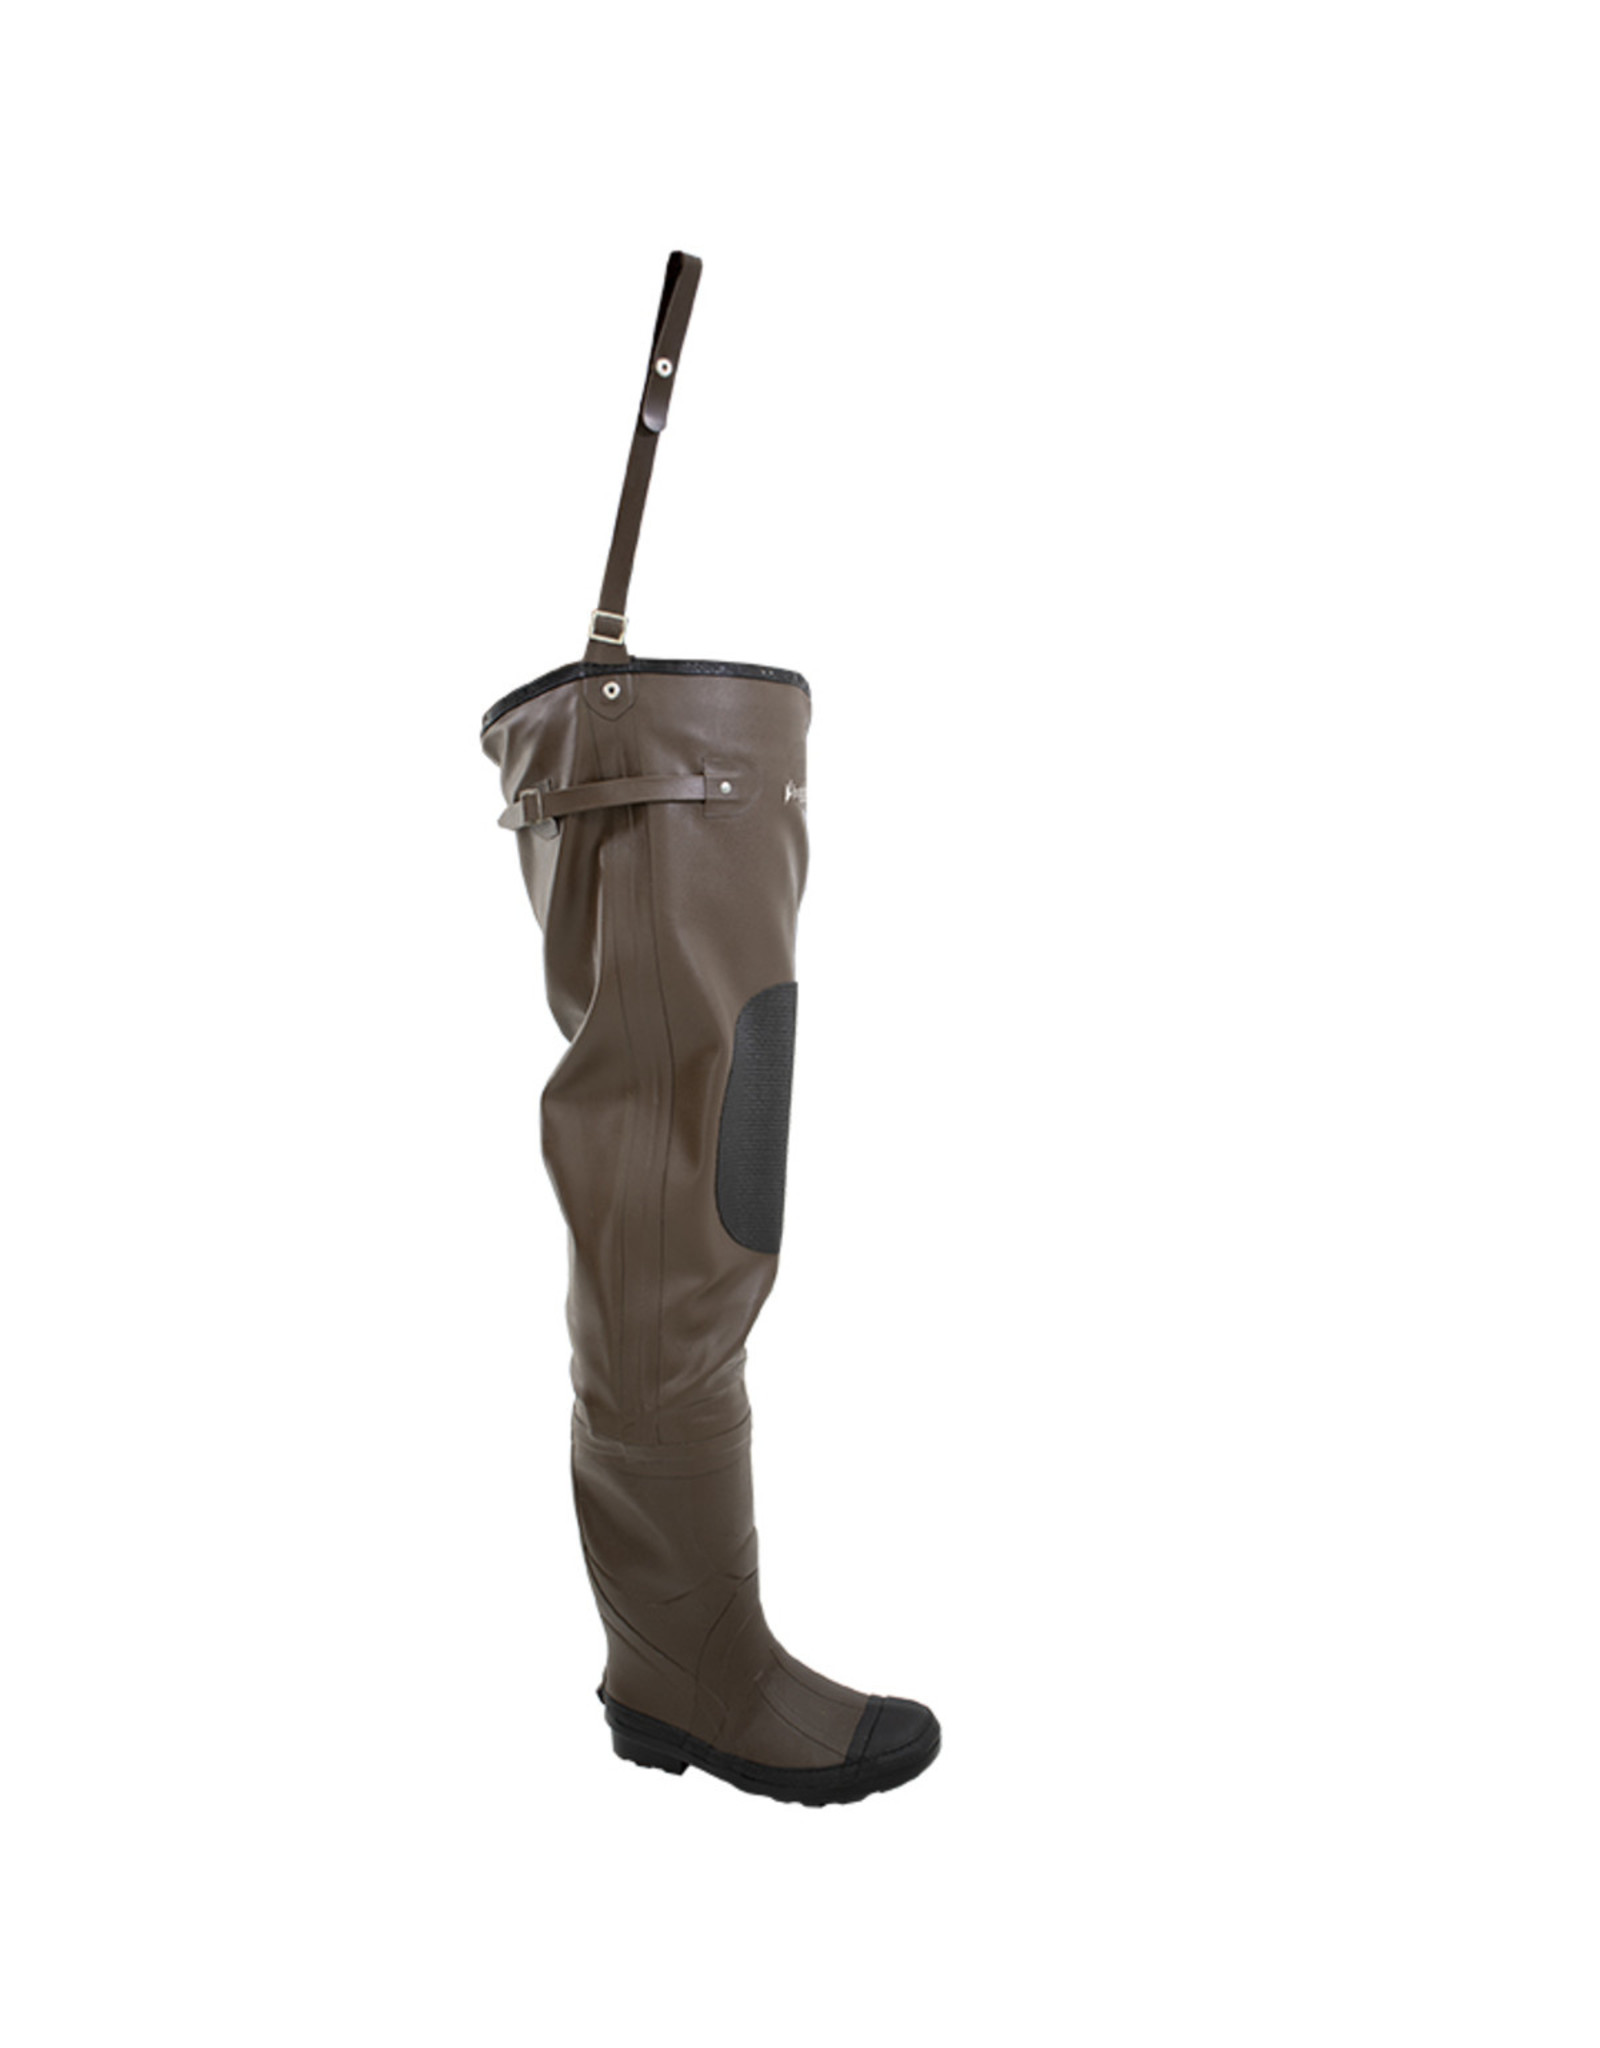 Frogg Toggs Classic Rubber Hipper Fishing Boot with Felt